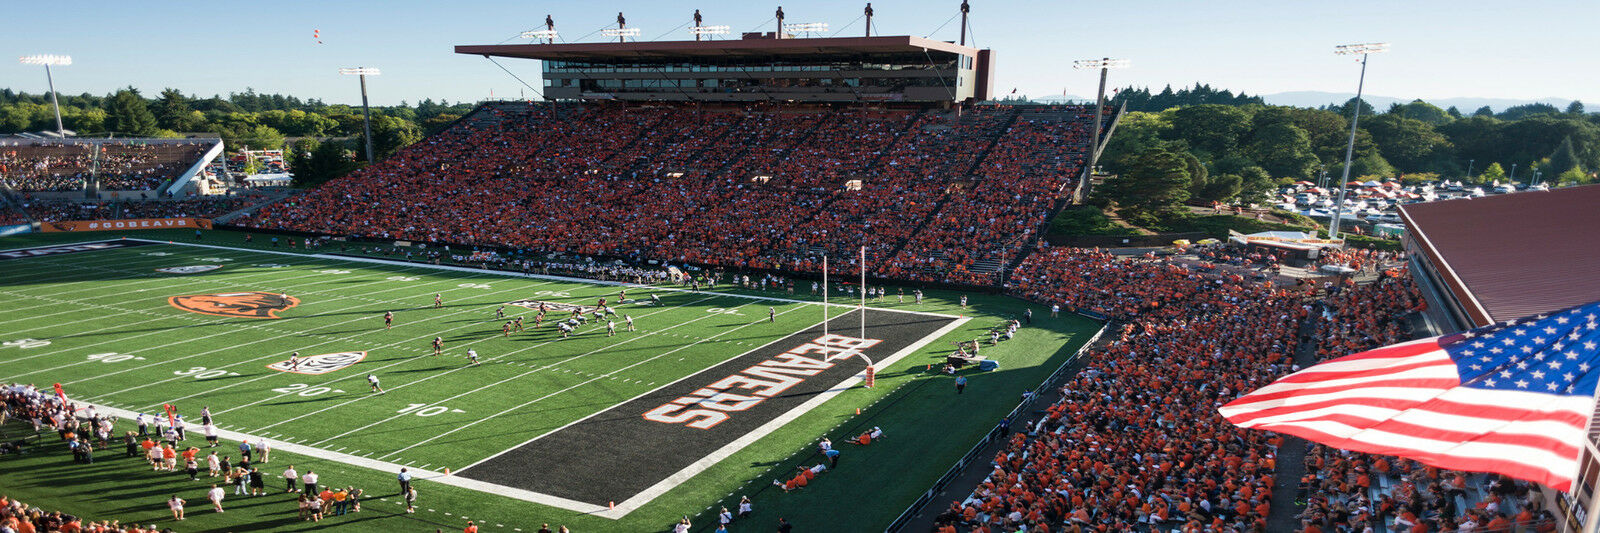 Washington Huskies at Oregon State Beavers Football